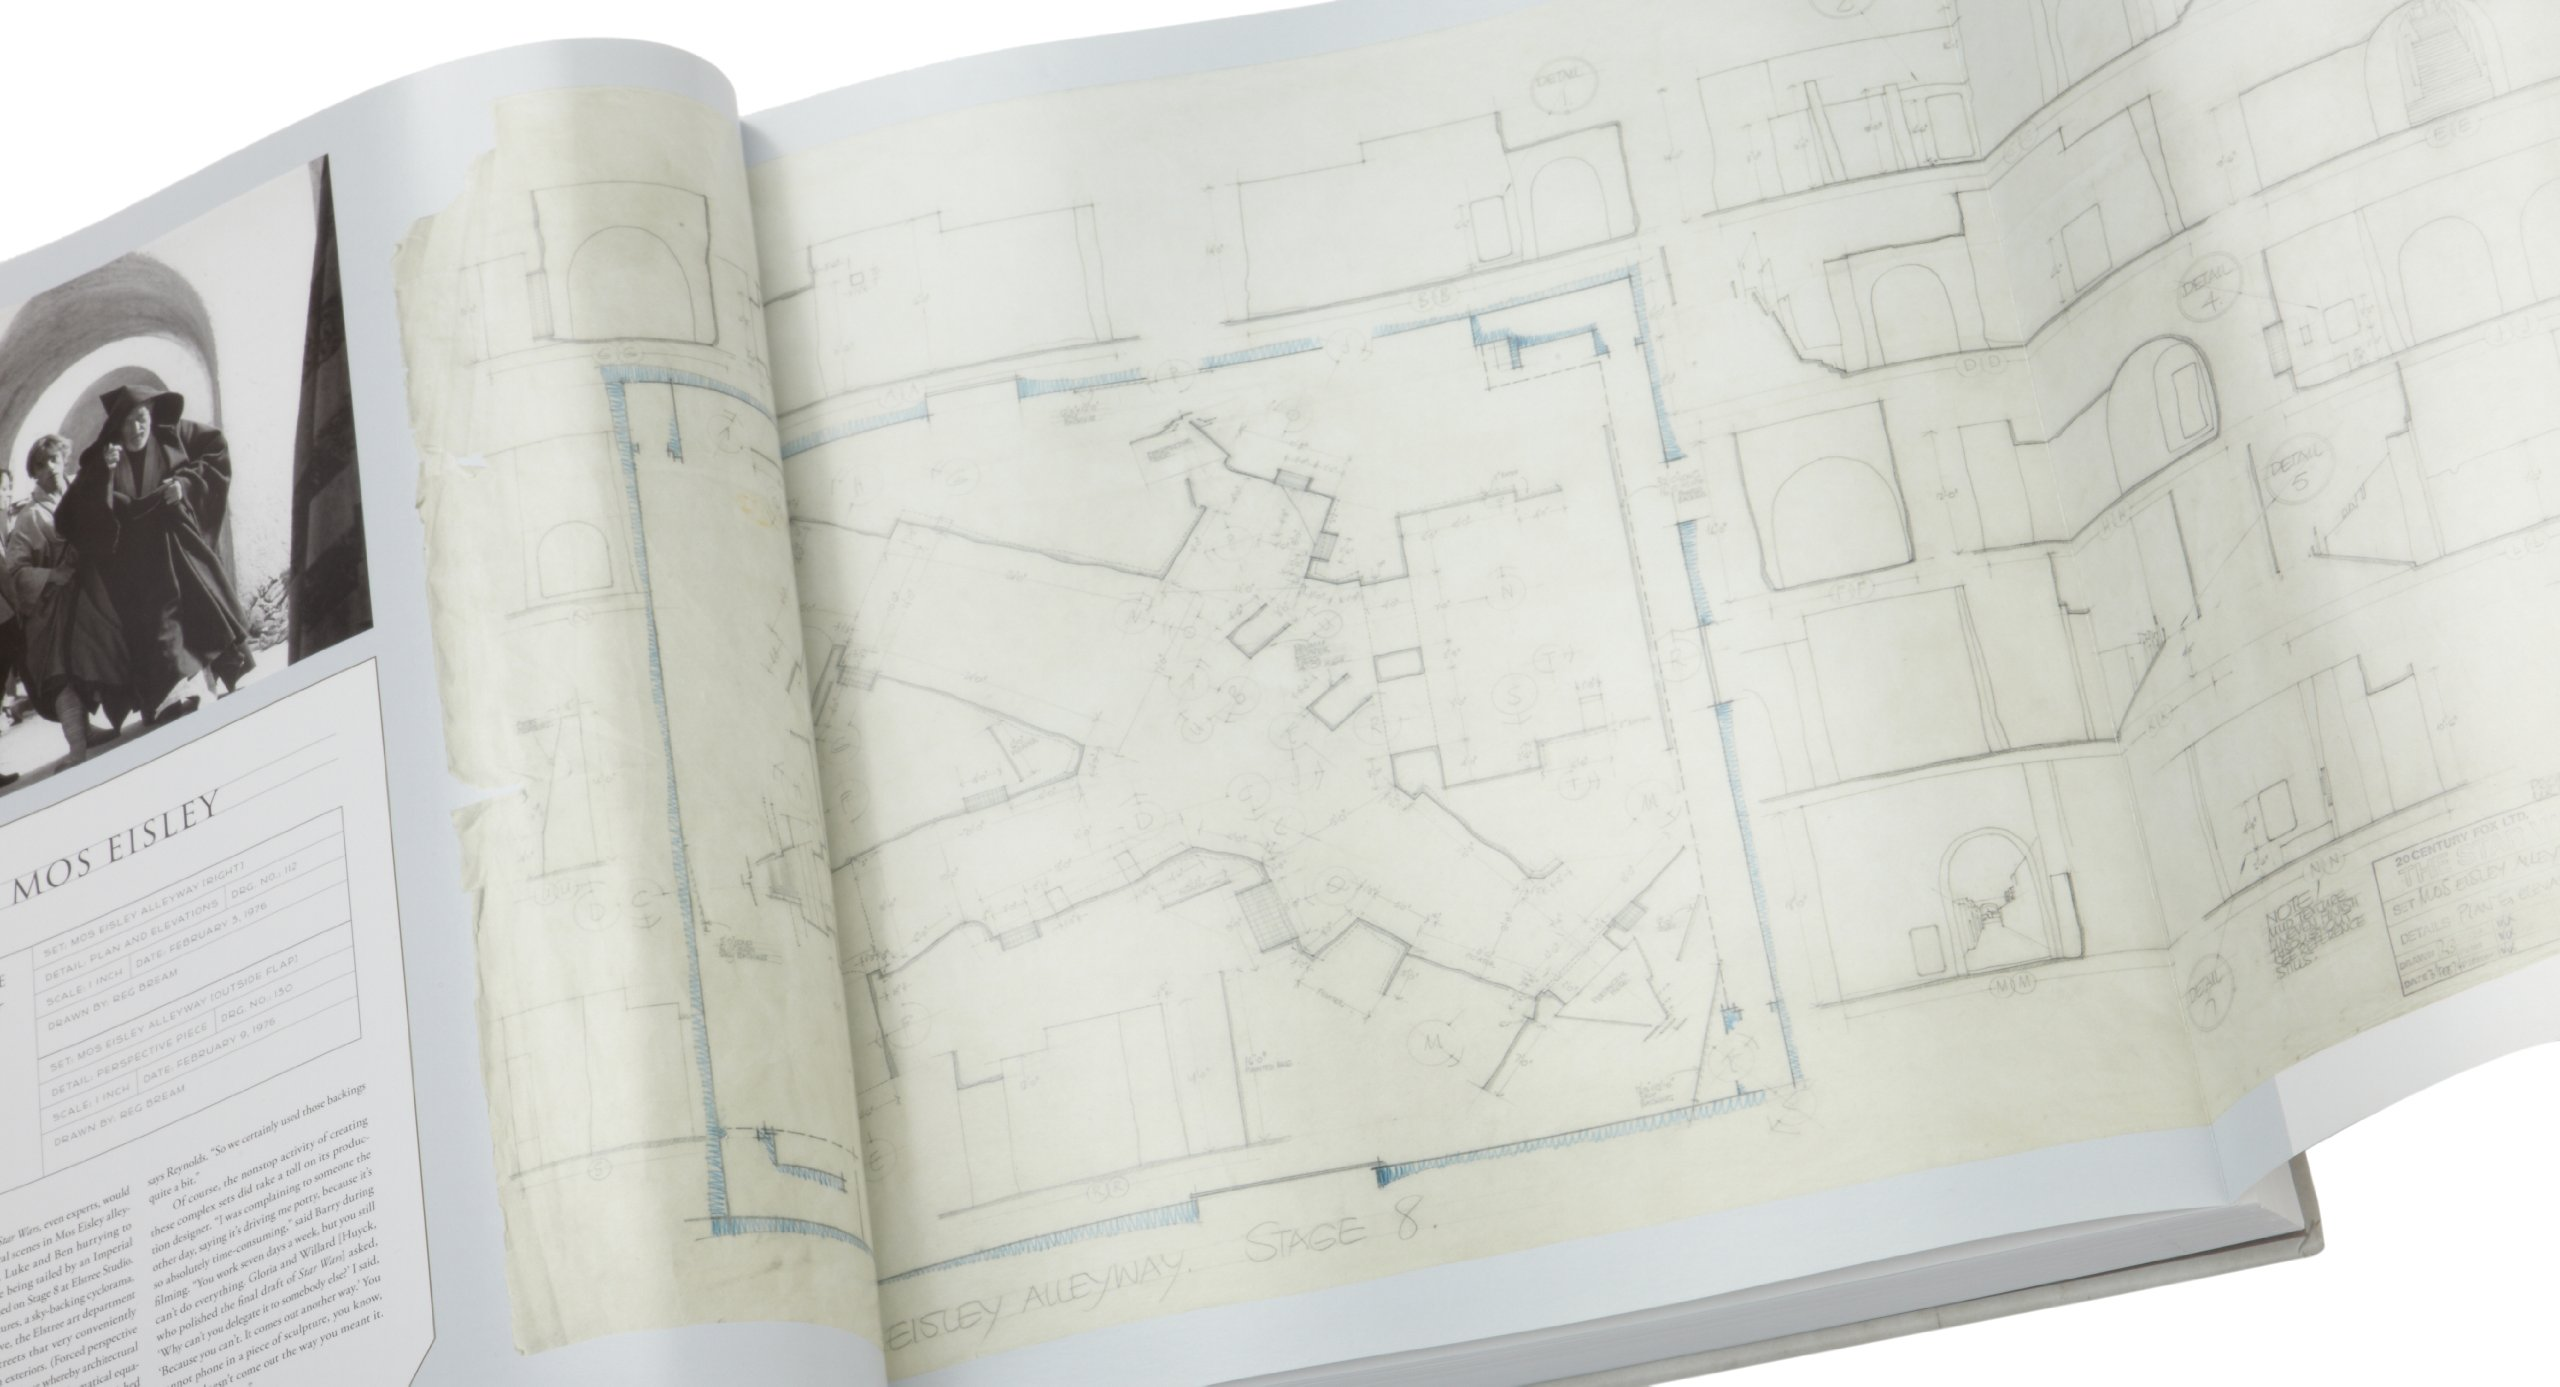 Star wars the blueprints j w rinzler 9781611097962 amazon star wars the blueprints j w rinzler 9781611097962 amazon books malvernweather Image collections